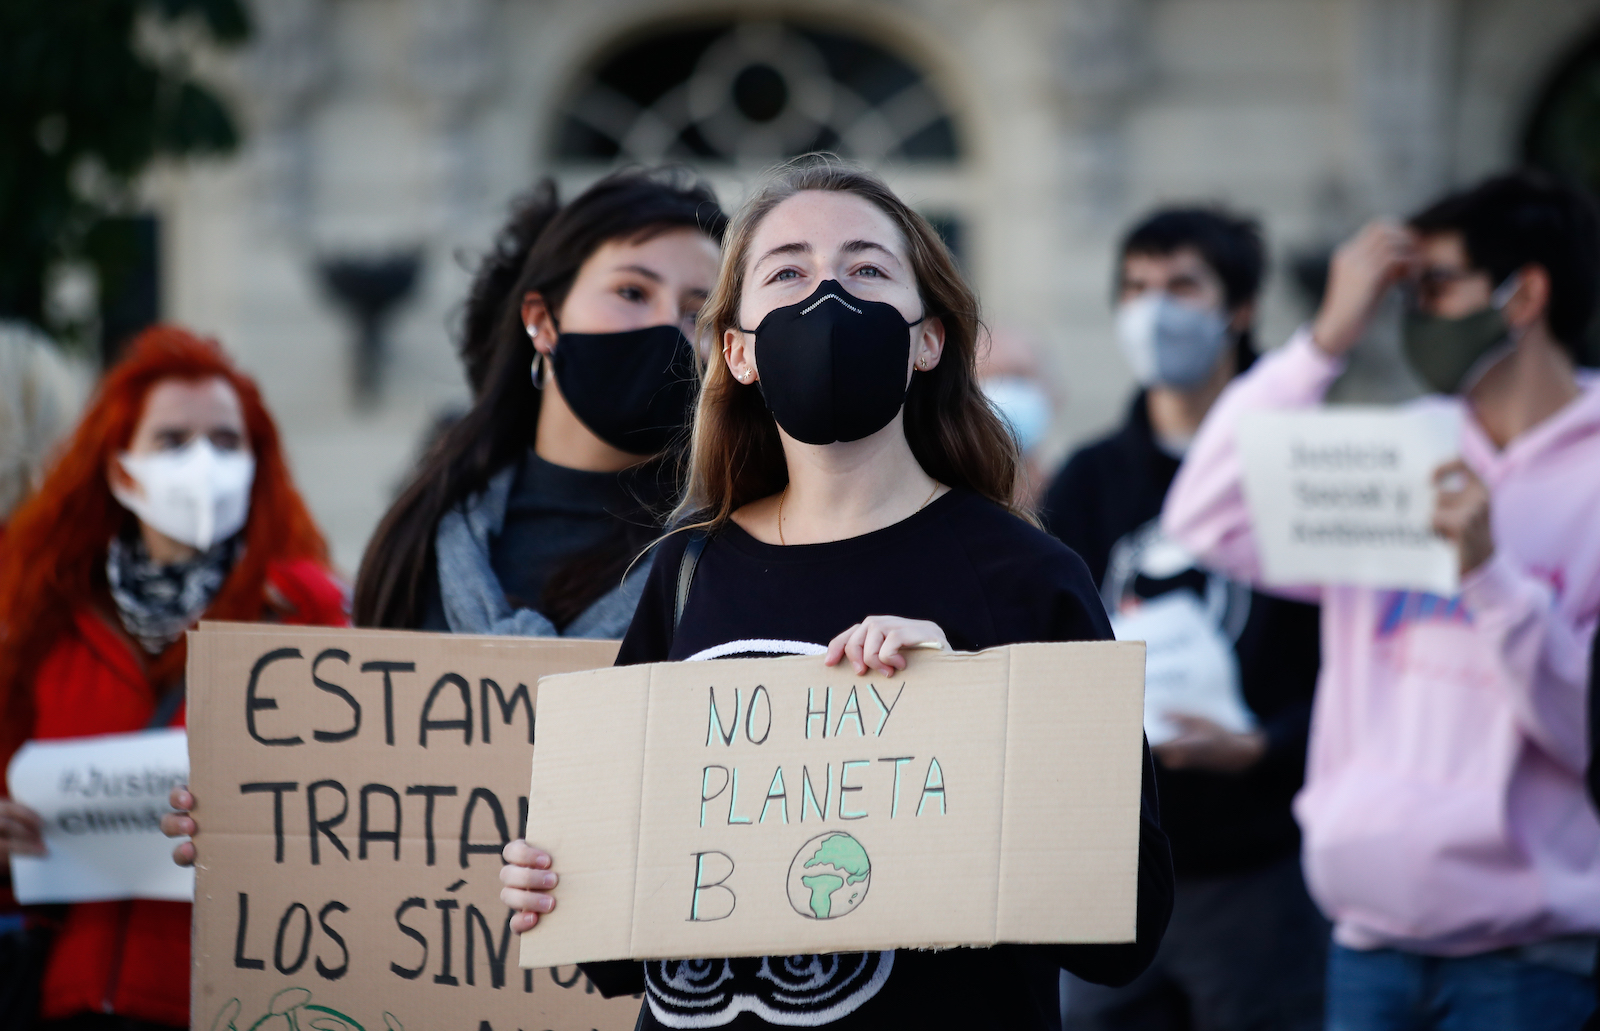 Despite COVID-19, young people resume global climate strikes